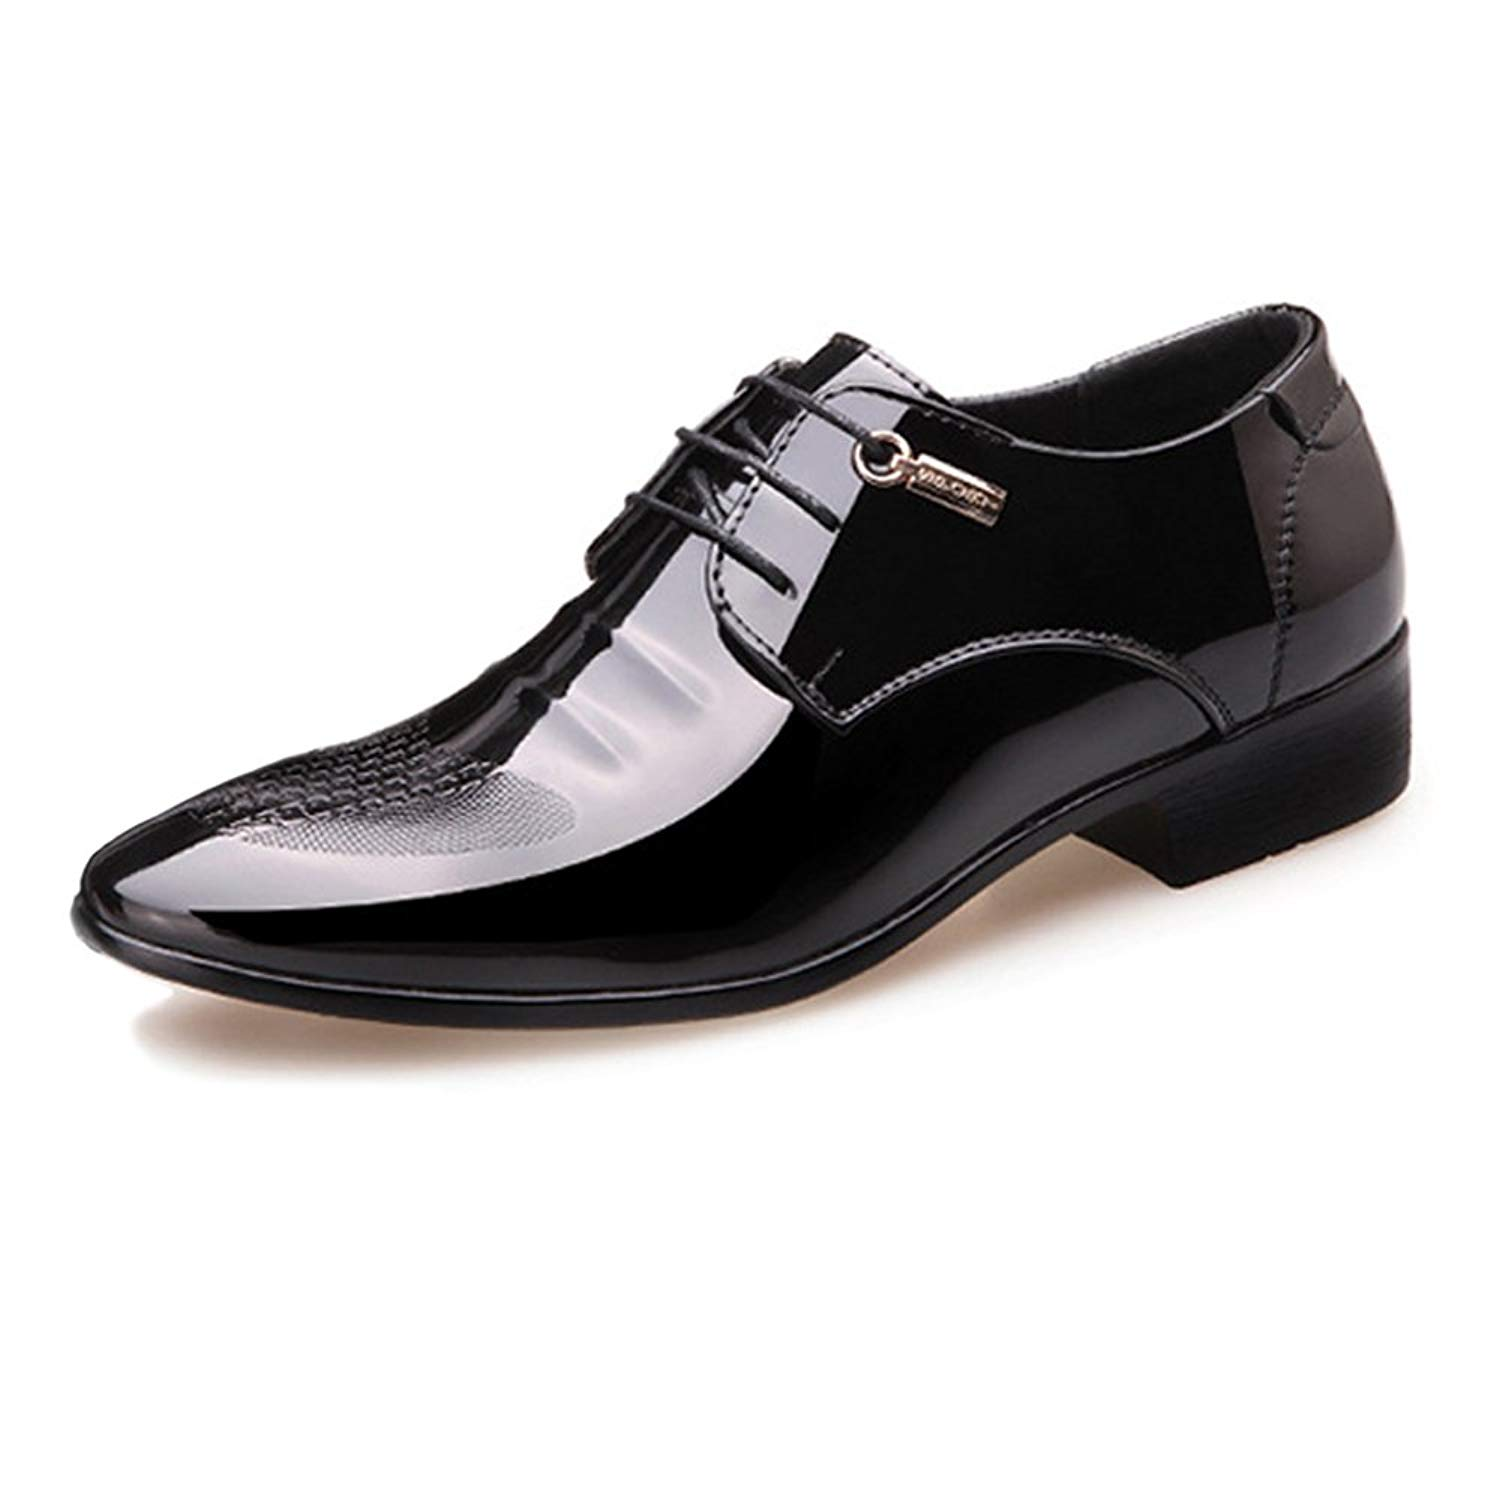 Muyin Men's Shoes Uneven Upper PU Leather Lace up Pointed Toe Breathable Lined Oxfords